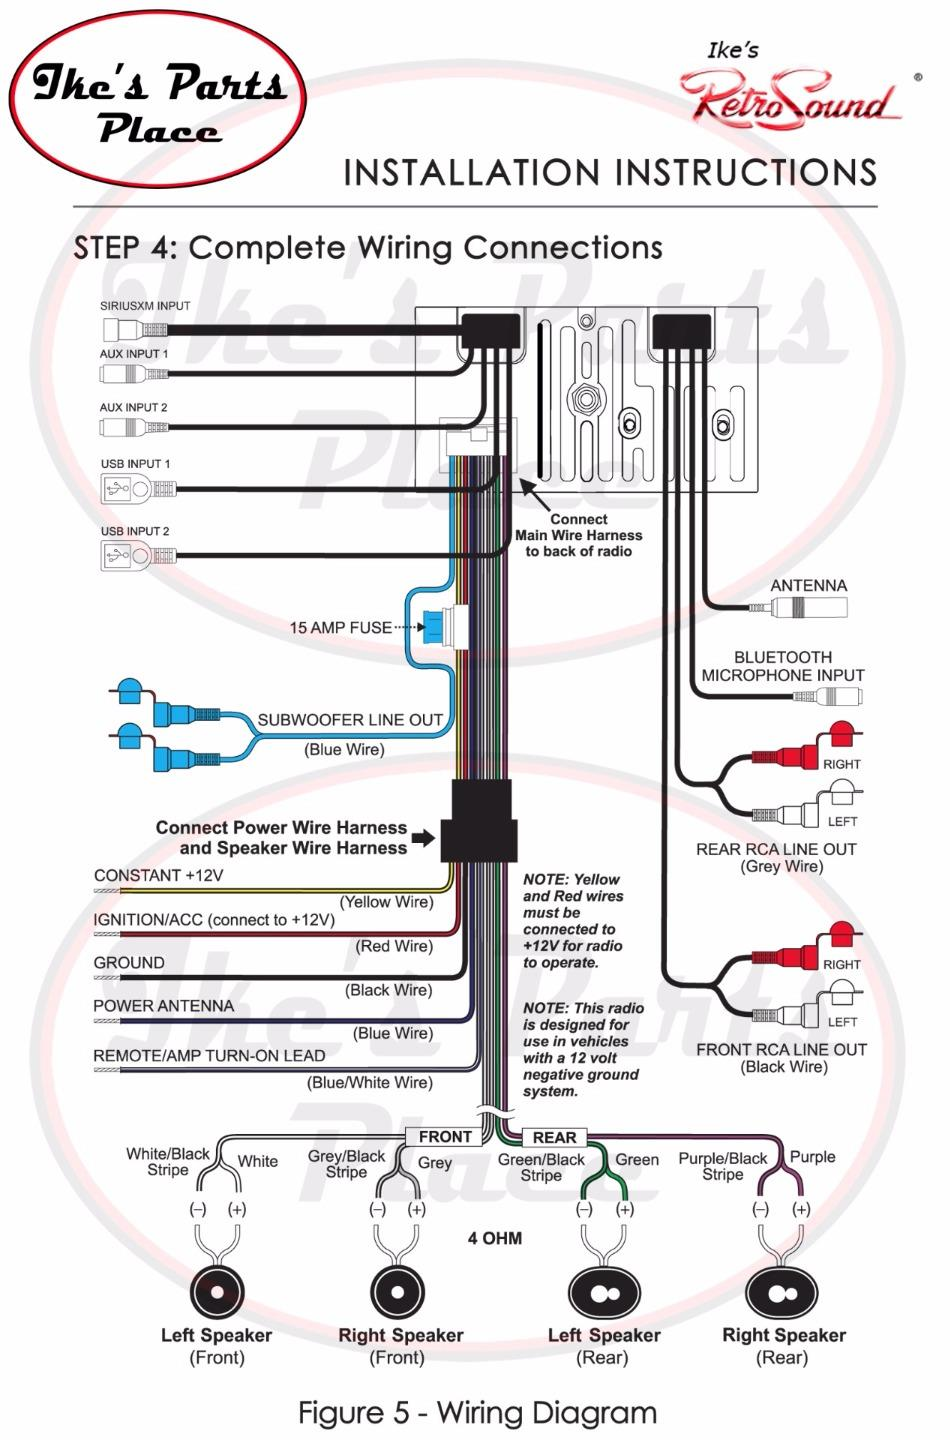 Ford Ipod Auxiliary Wiring Diagram Not Lossing Apple Cable Retrosound Hermosa C Radio Bluetooth Usb 3 5mm Aux In 4 221 03 Rh Ebay Com Amplifier Charger